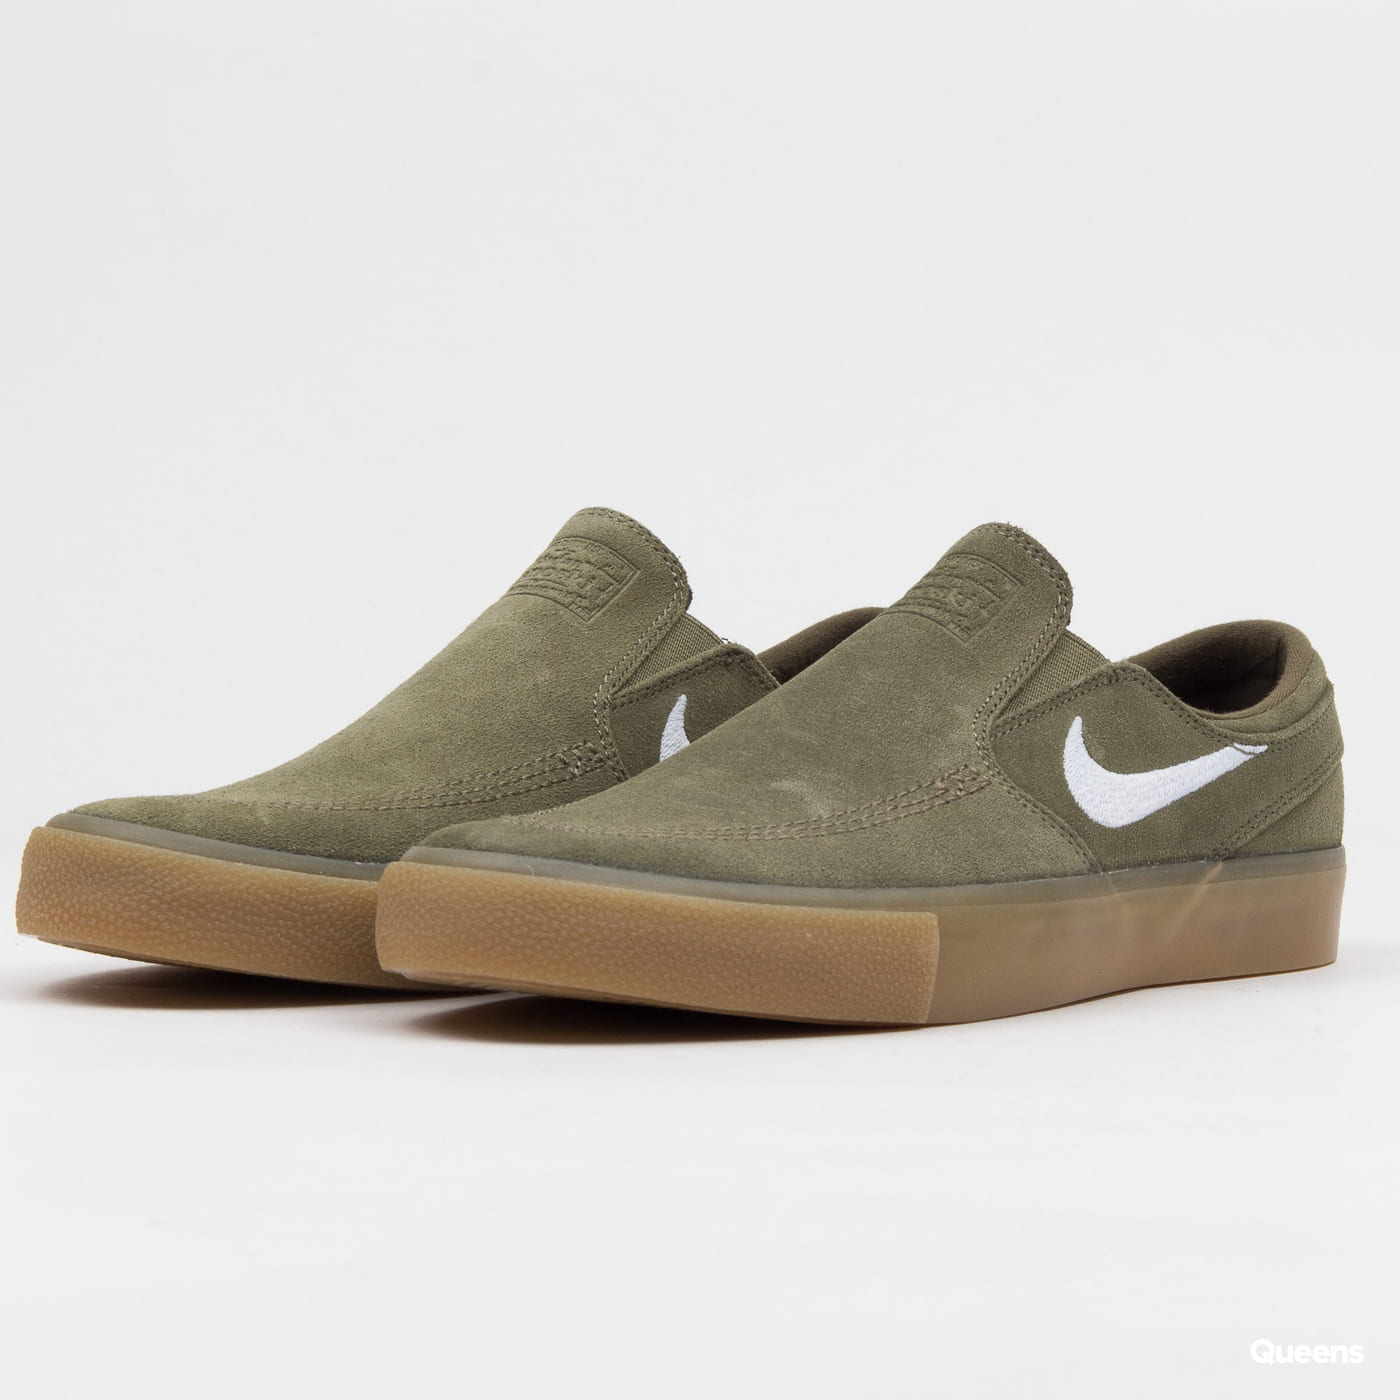 d47de88bfcd63 Obuv Nike SB Zoom Janoski Slip RM medium olive / white (AT8899-200) –  Queens 💚